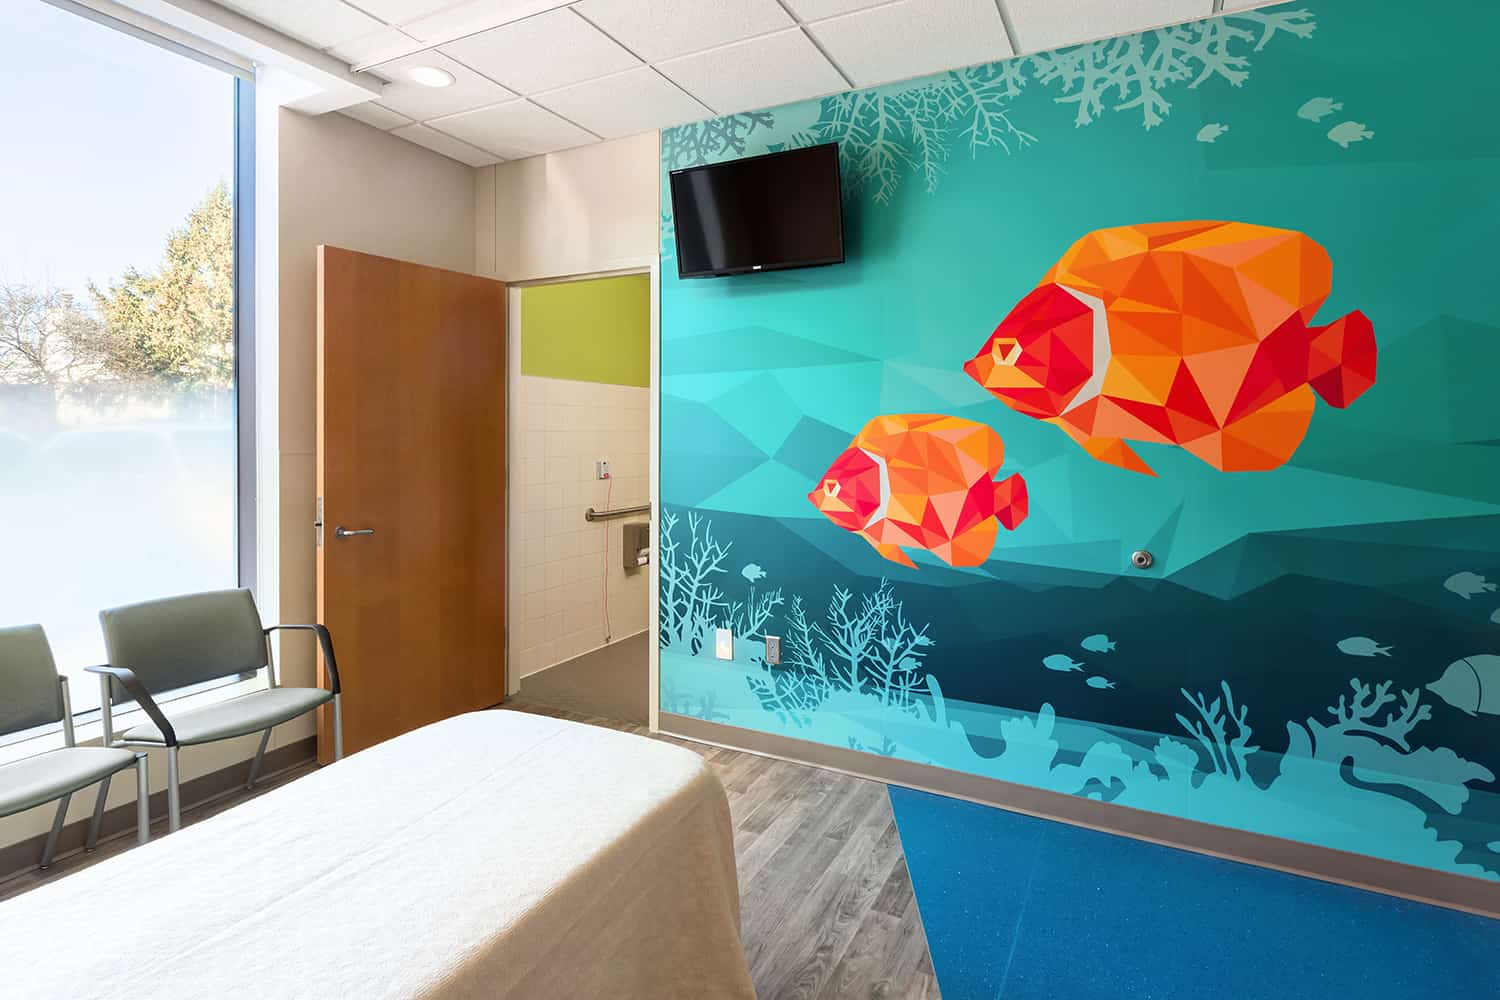 The footwall of a patient room with a wall mural of tropical fish.